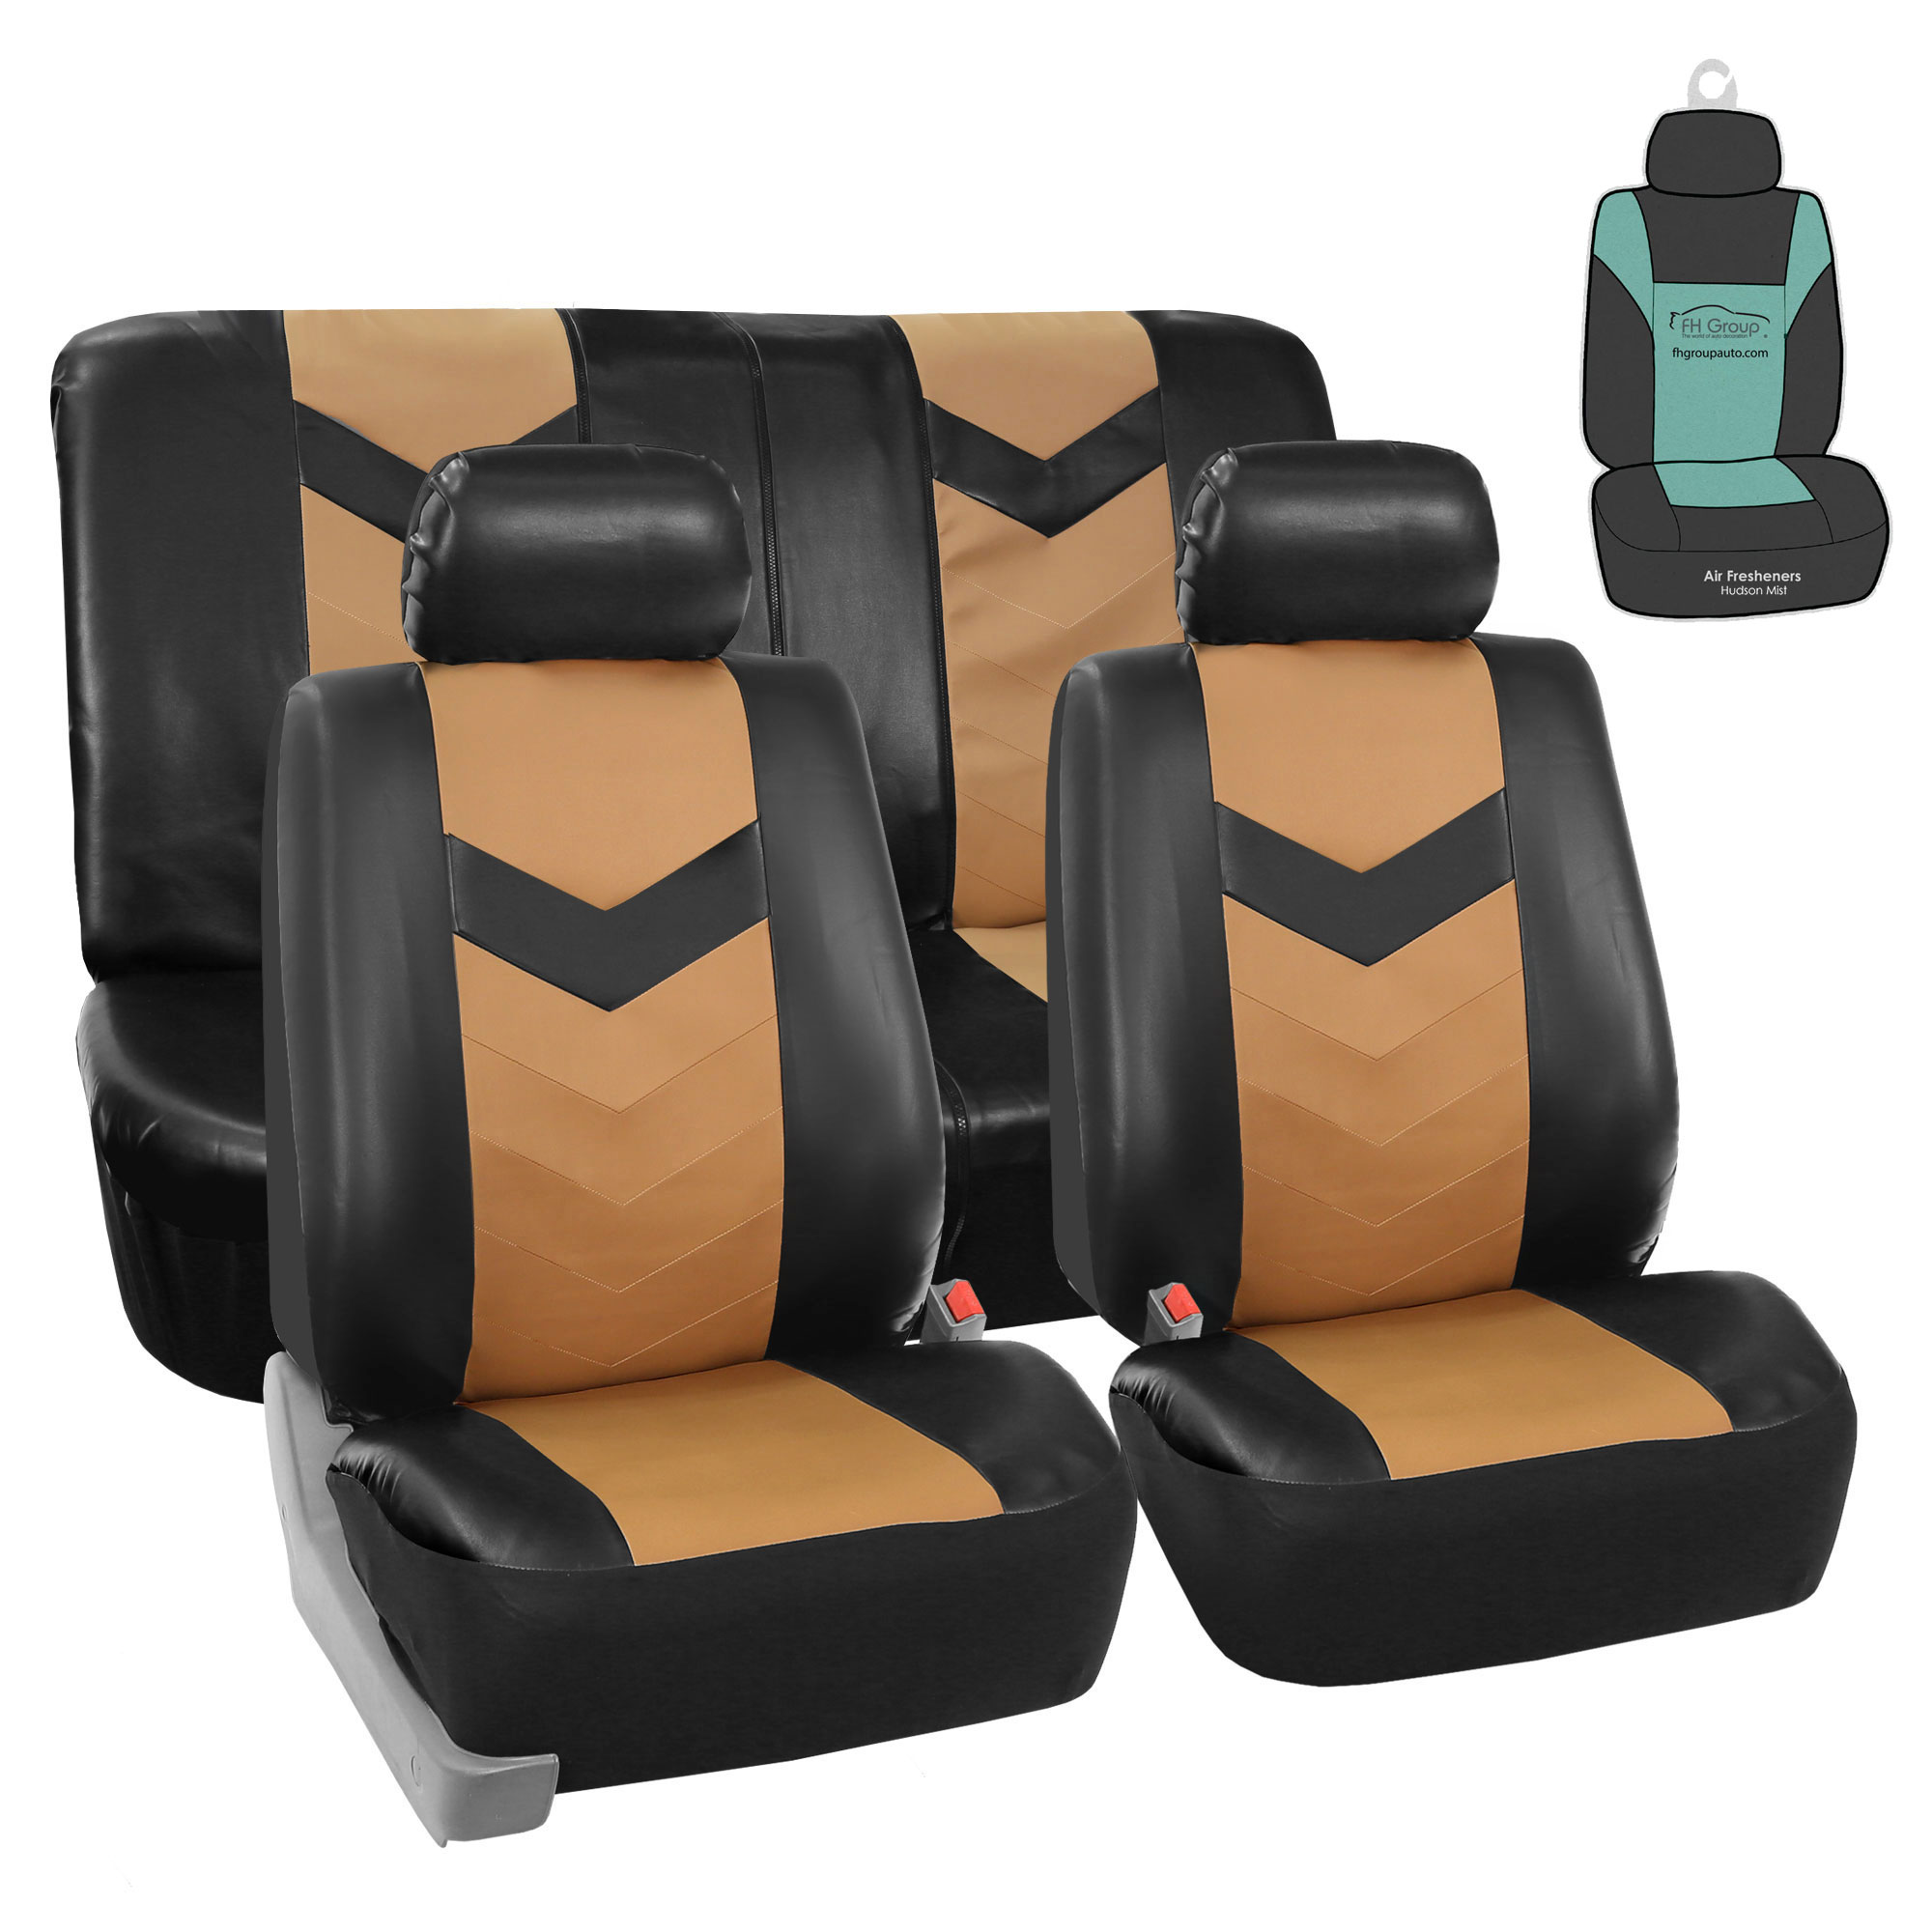 FH Gorup PU Leather Seat Covers For Auto Car SUV Tan Black w/ Accessories / Free Gift